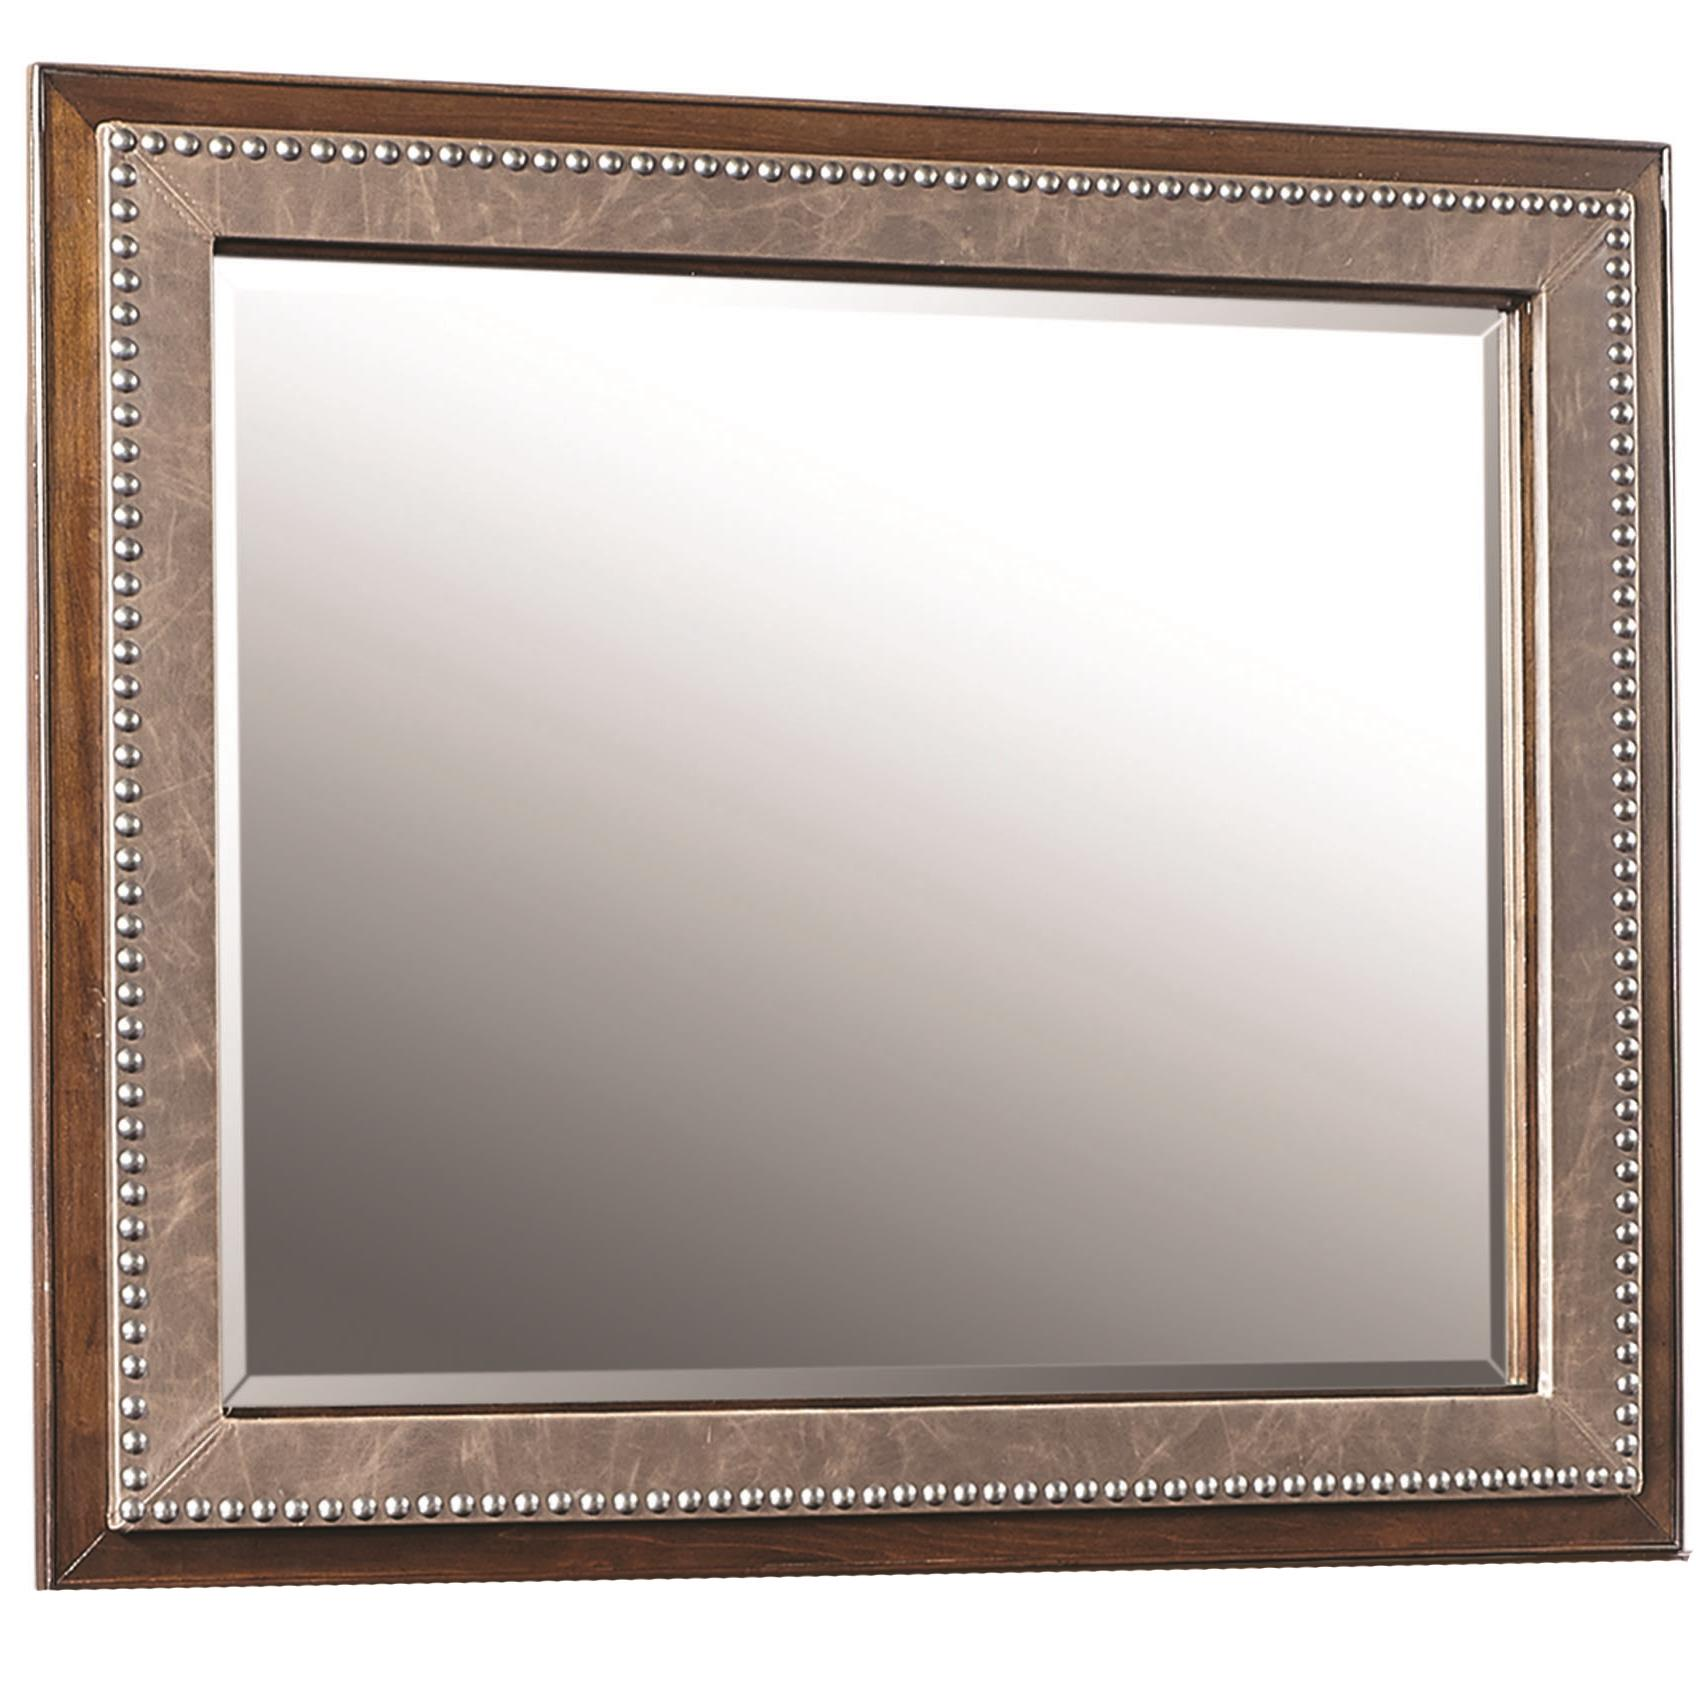 Aspenhome Bancroft Mirror - Item Number: 108-464